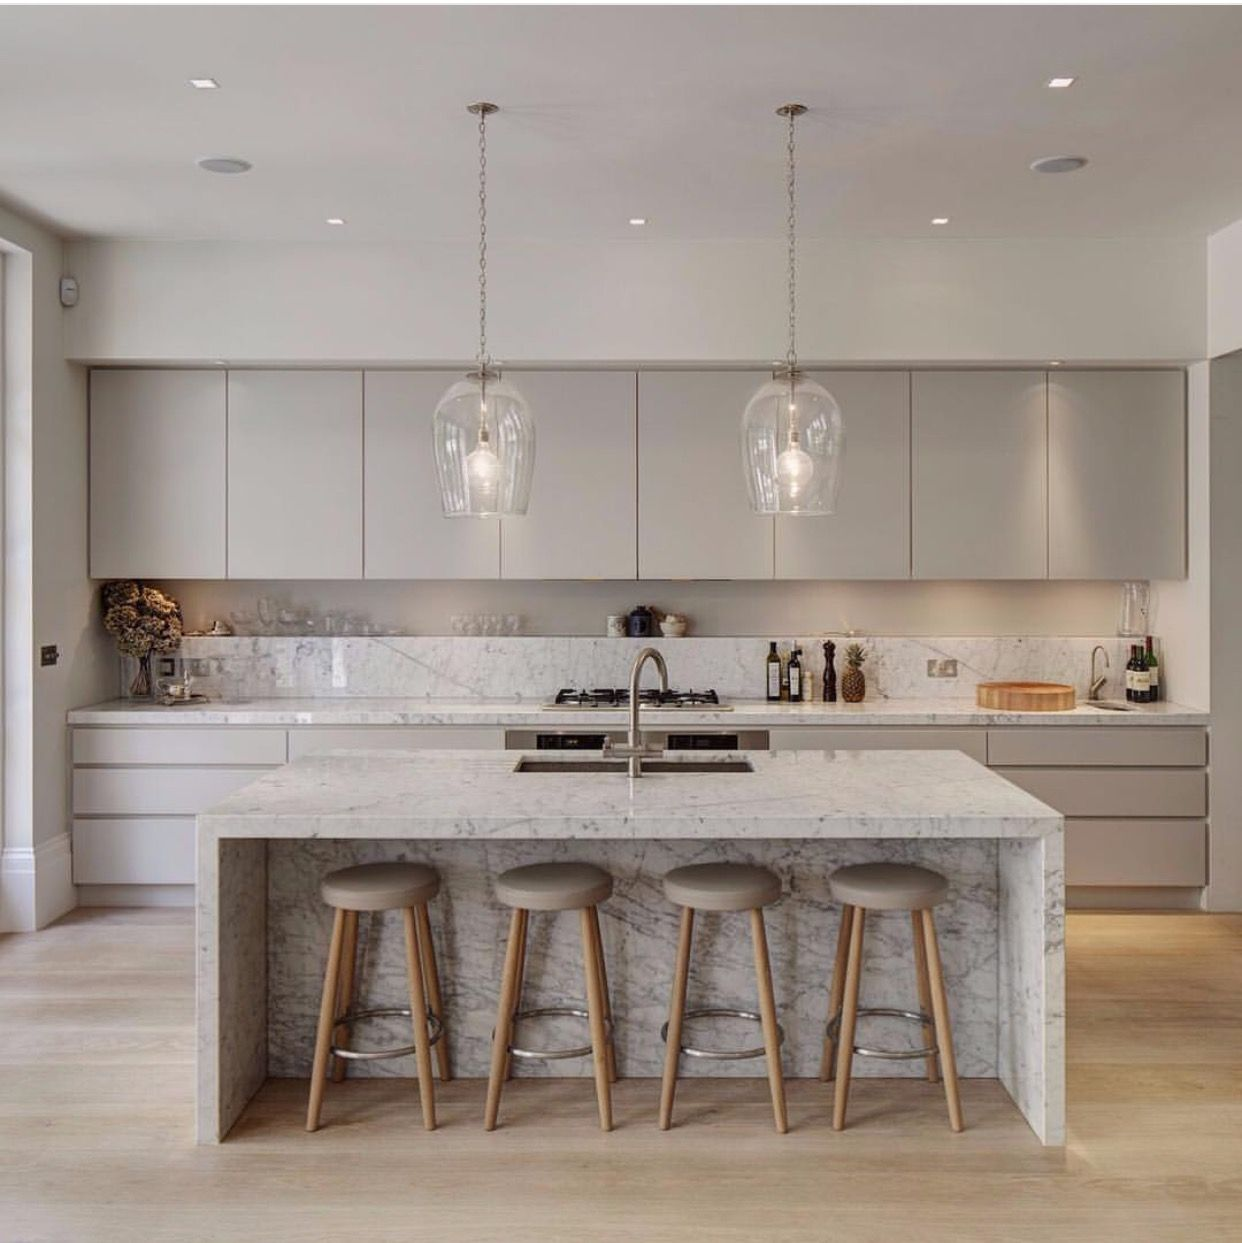 ... Stone In This Contemporary London Home U2026 Especially Love The Kitchen  With Its Wide Planked Wood Floors, Striking Marble Island And Counters,  Plus Th